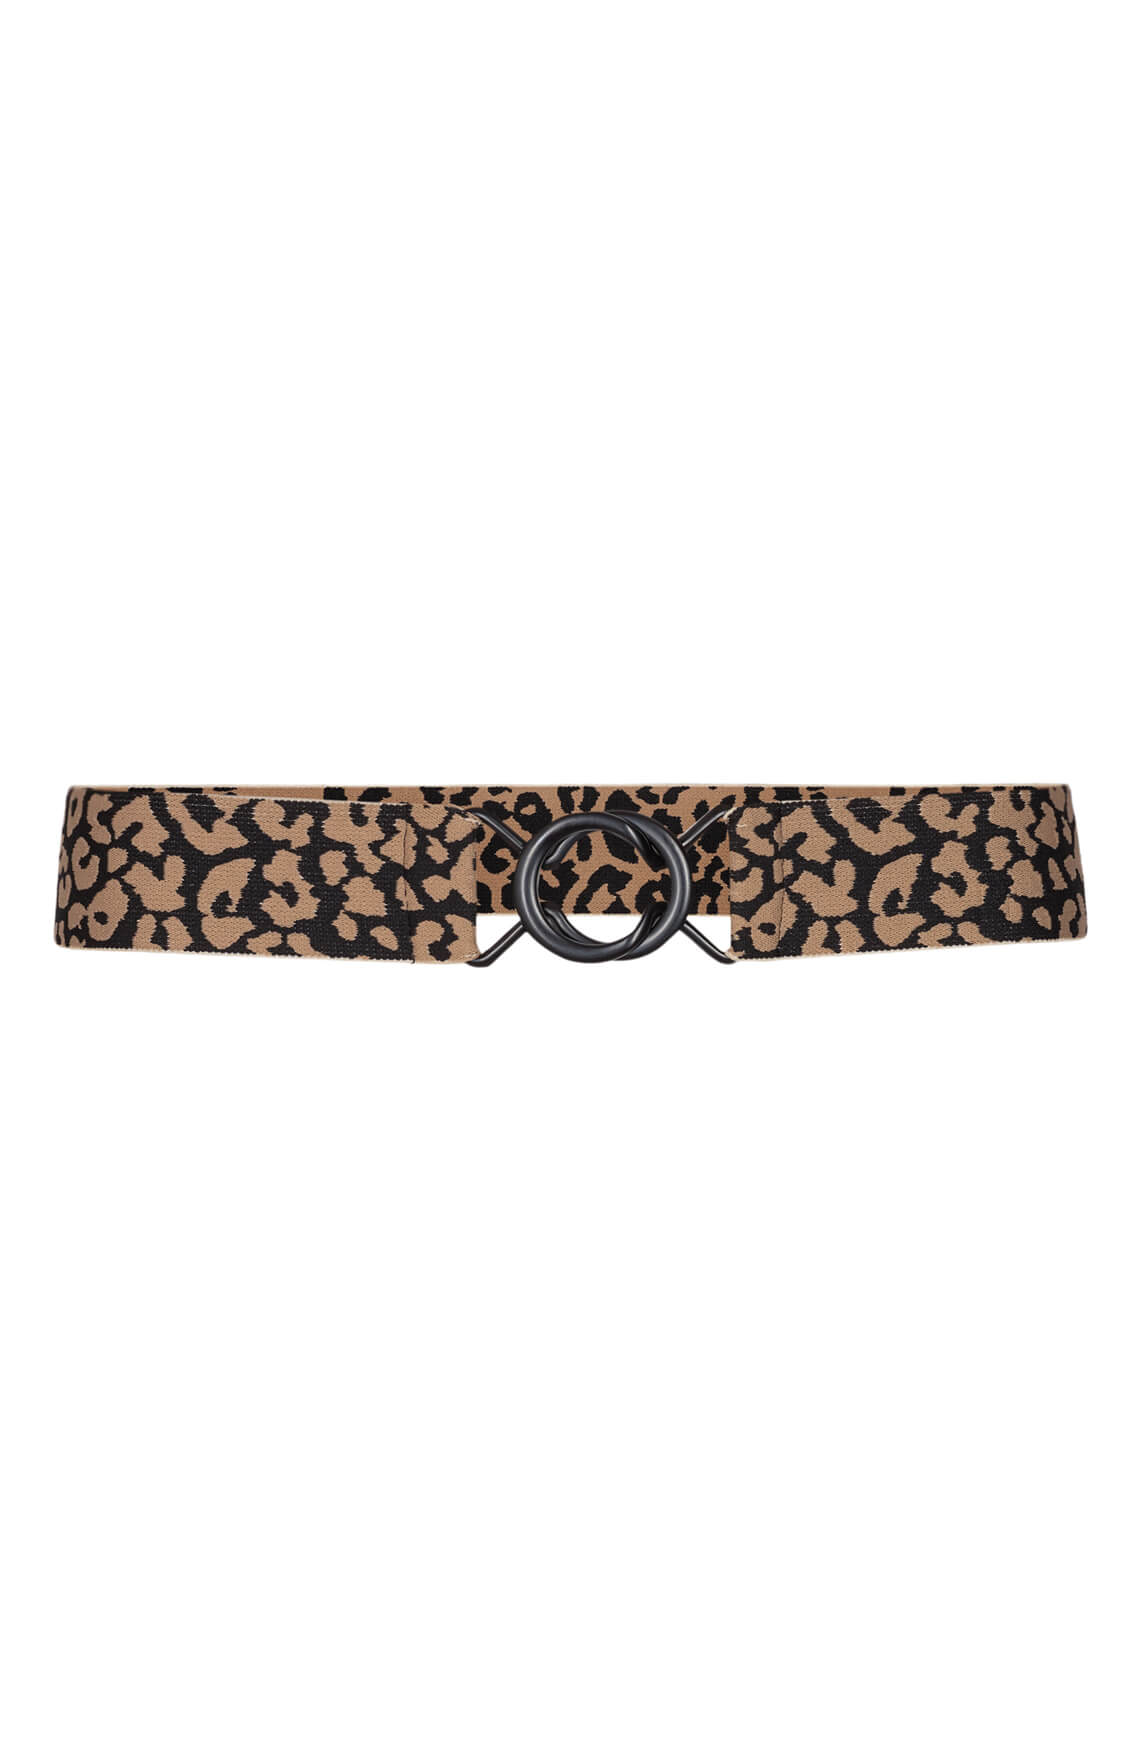 Co Couture Dames Black animal ceintuur zwart